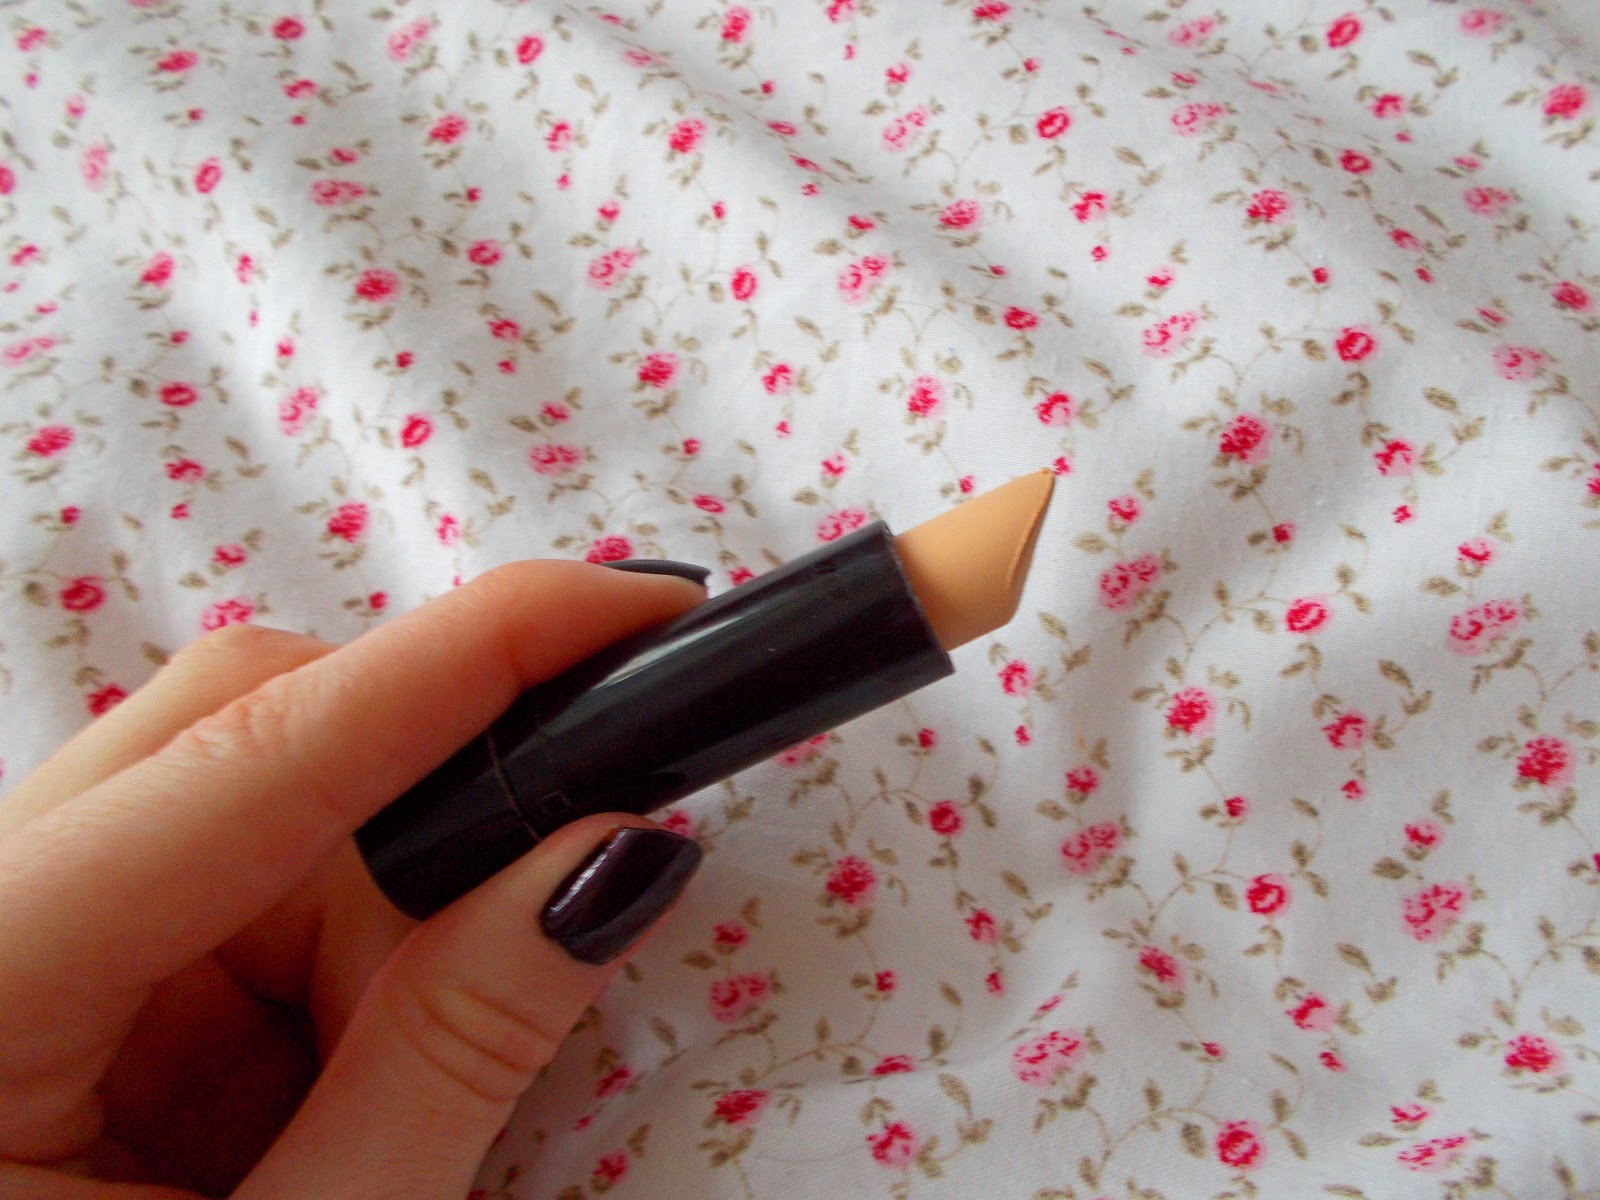 Rimmel Hide The Blemish Concealer up close